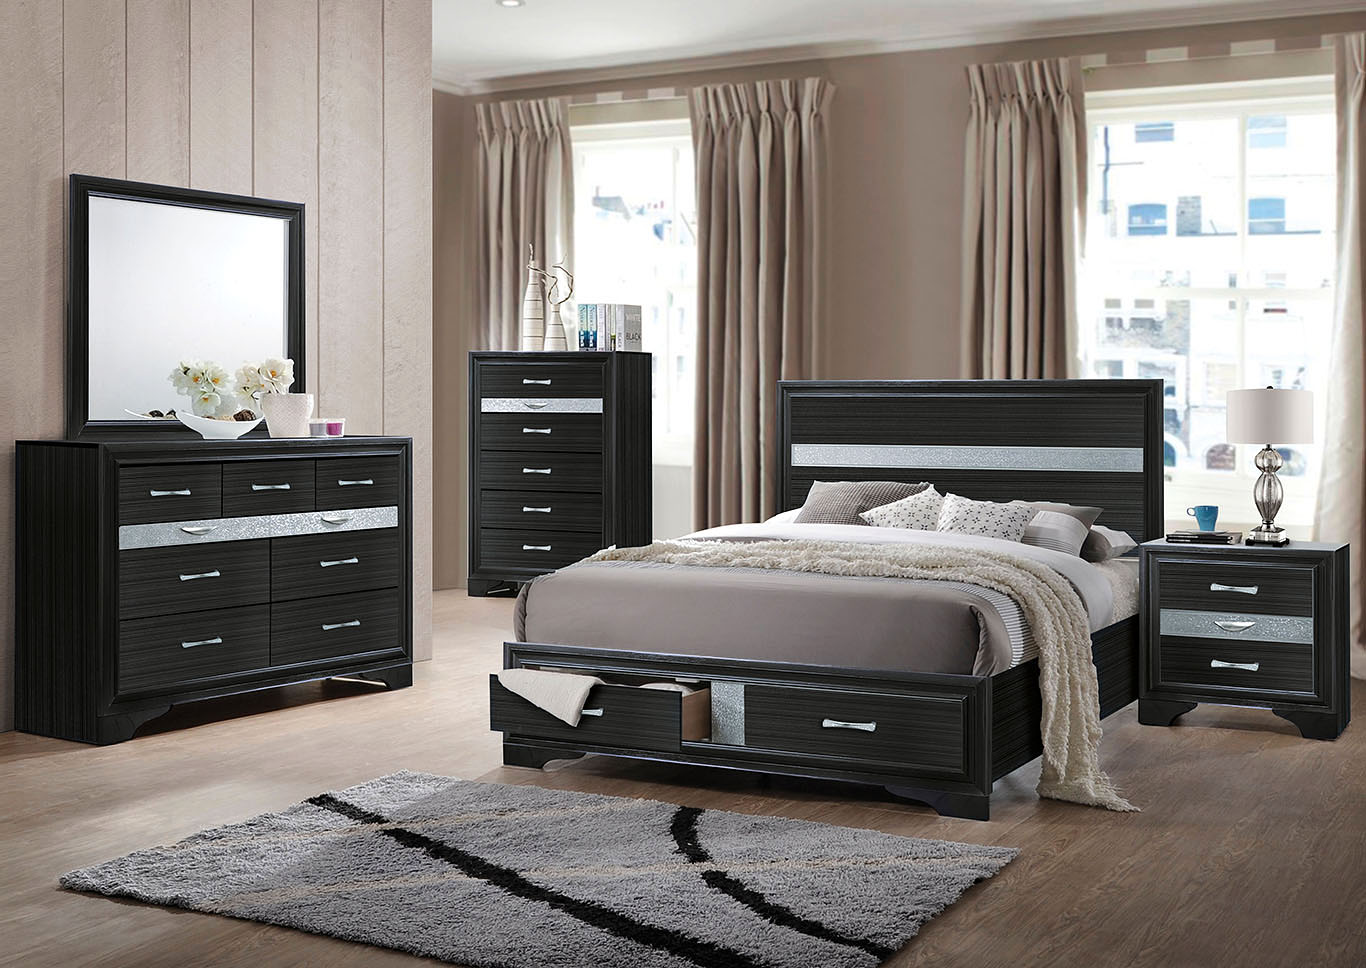 Naima Black Queen Bed,Acme